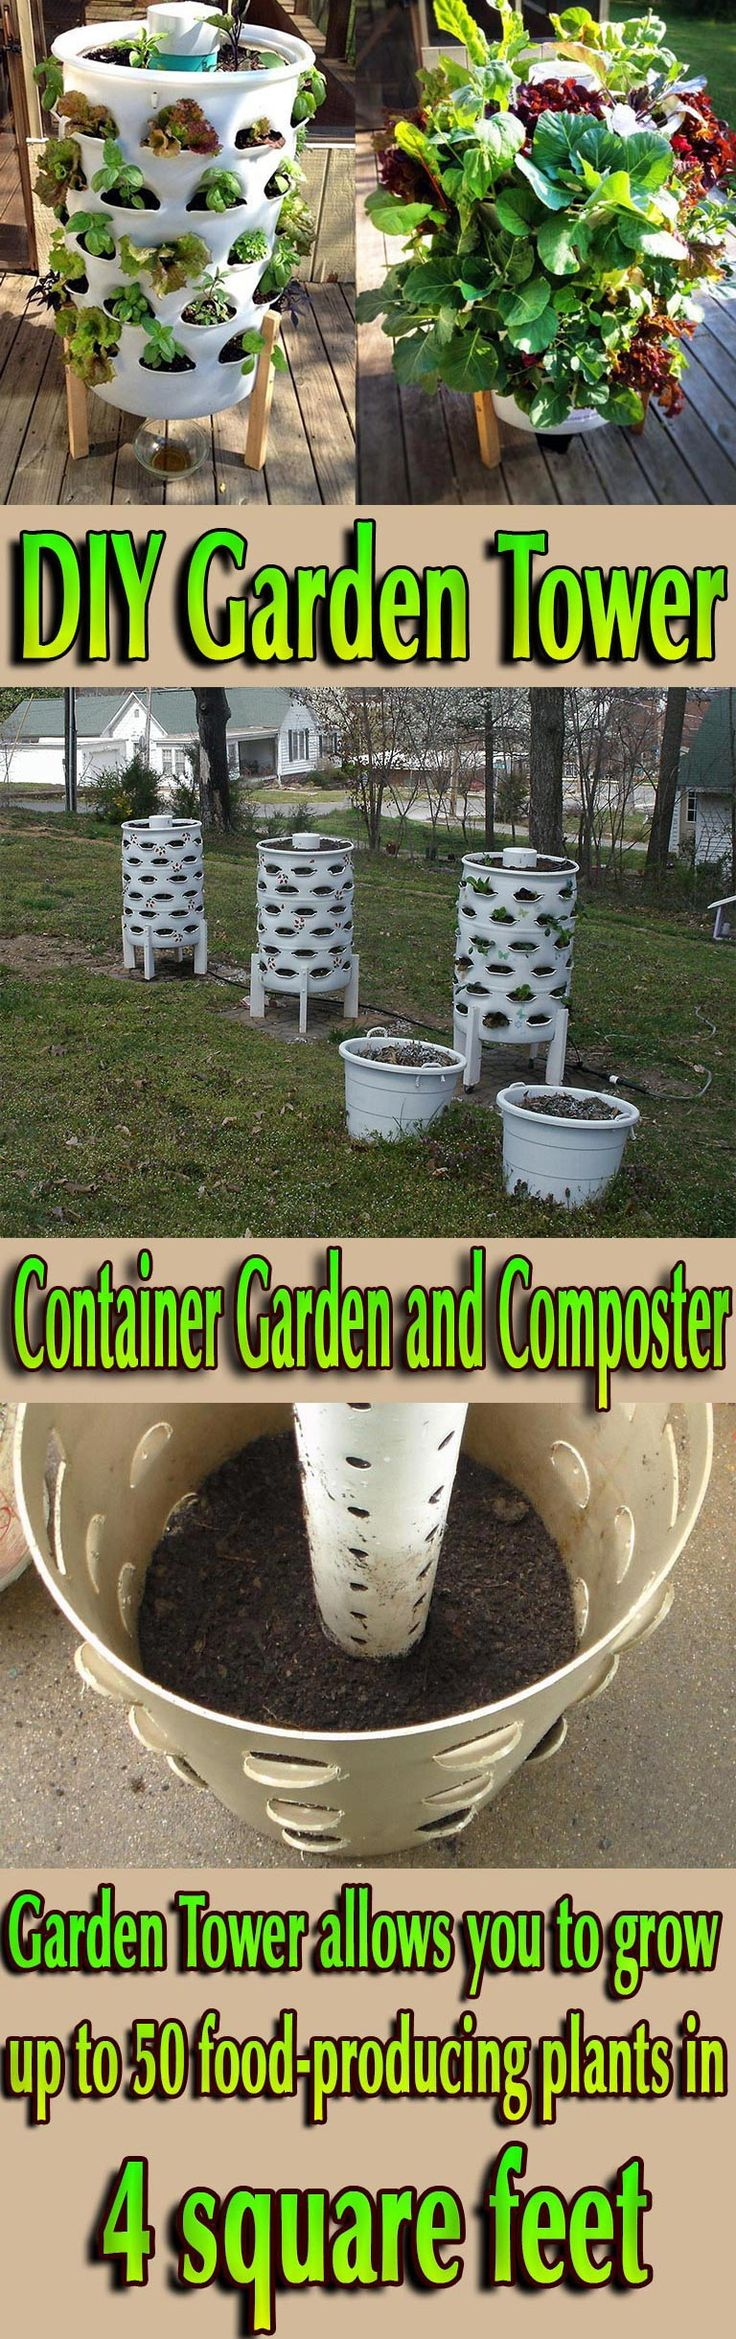 Container Garden and Composter. A Revolutionary Gardening and Composting Solution for Anyone! #gardening #diy #garden #planter